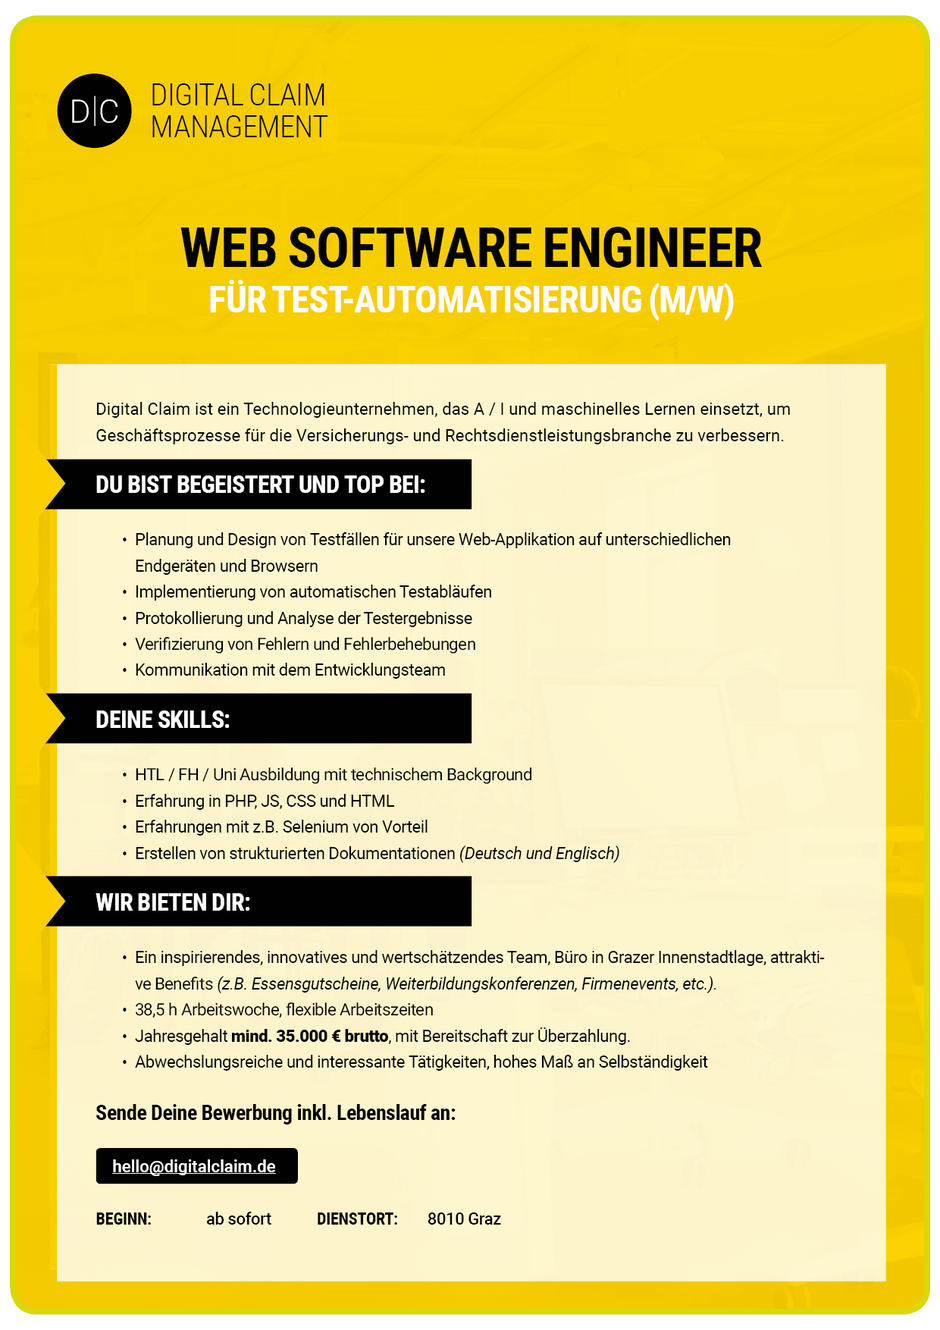 Software Developer Jobs - Web Software Engineer - Digital Claim Management - Graz - Steiermark